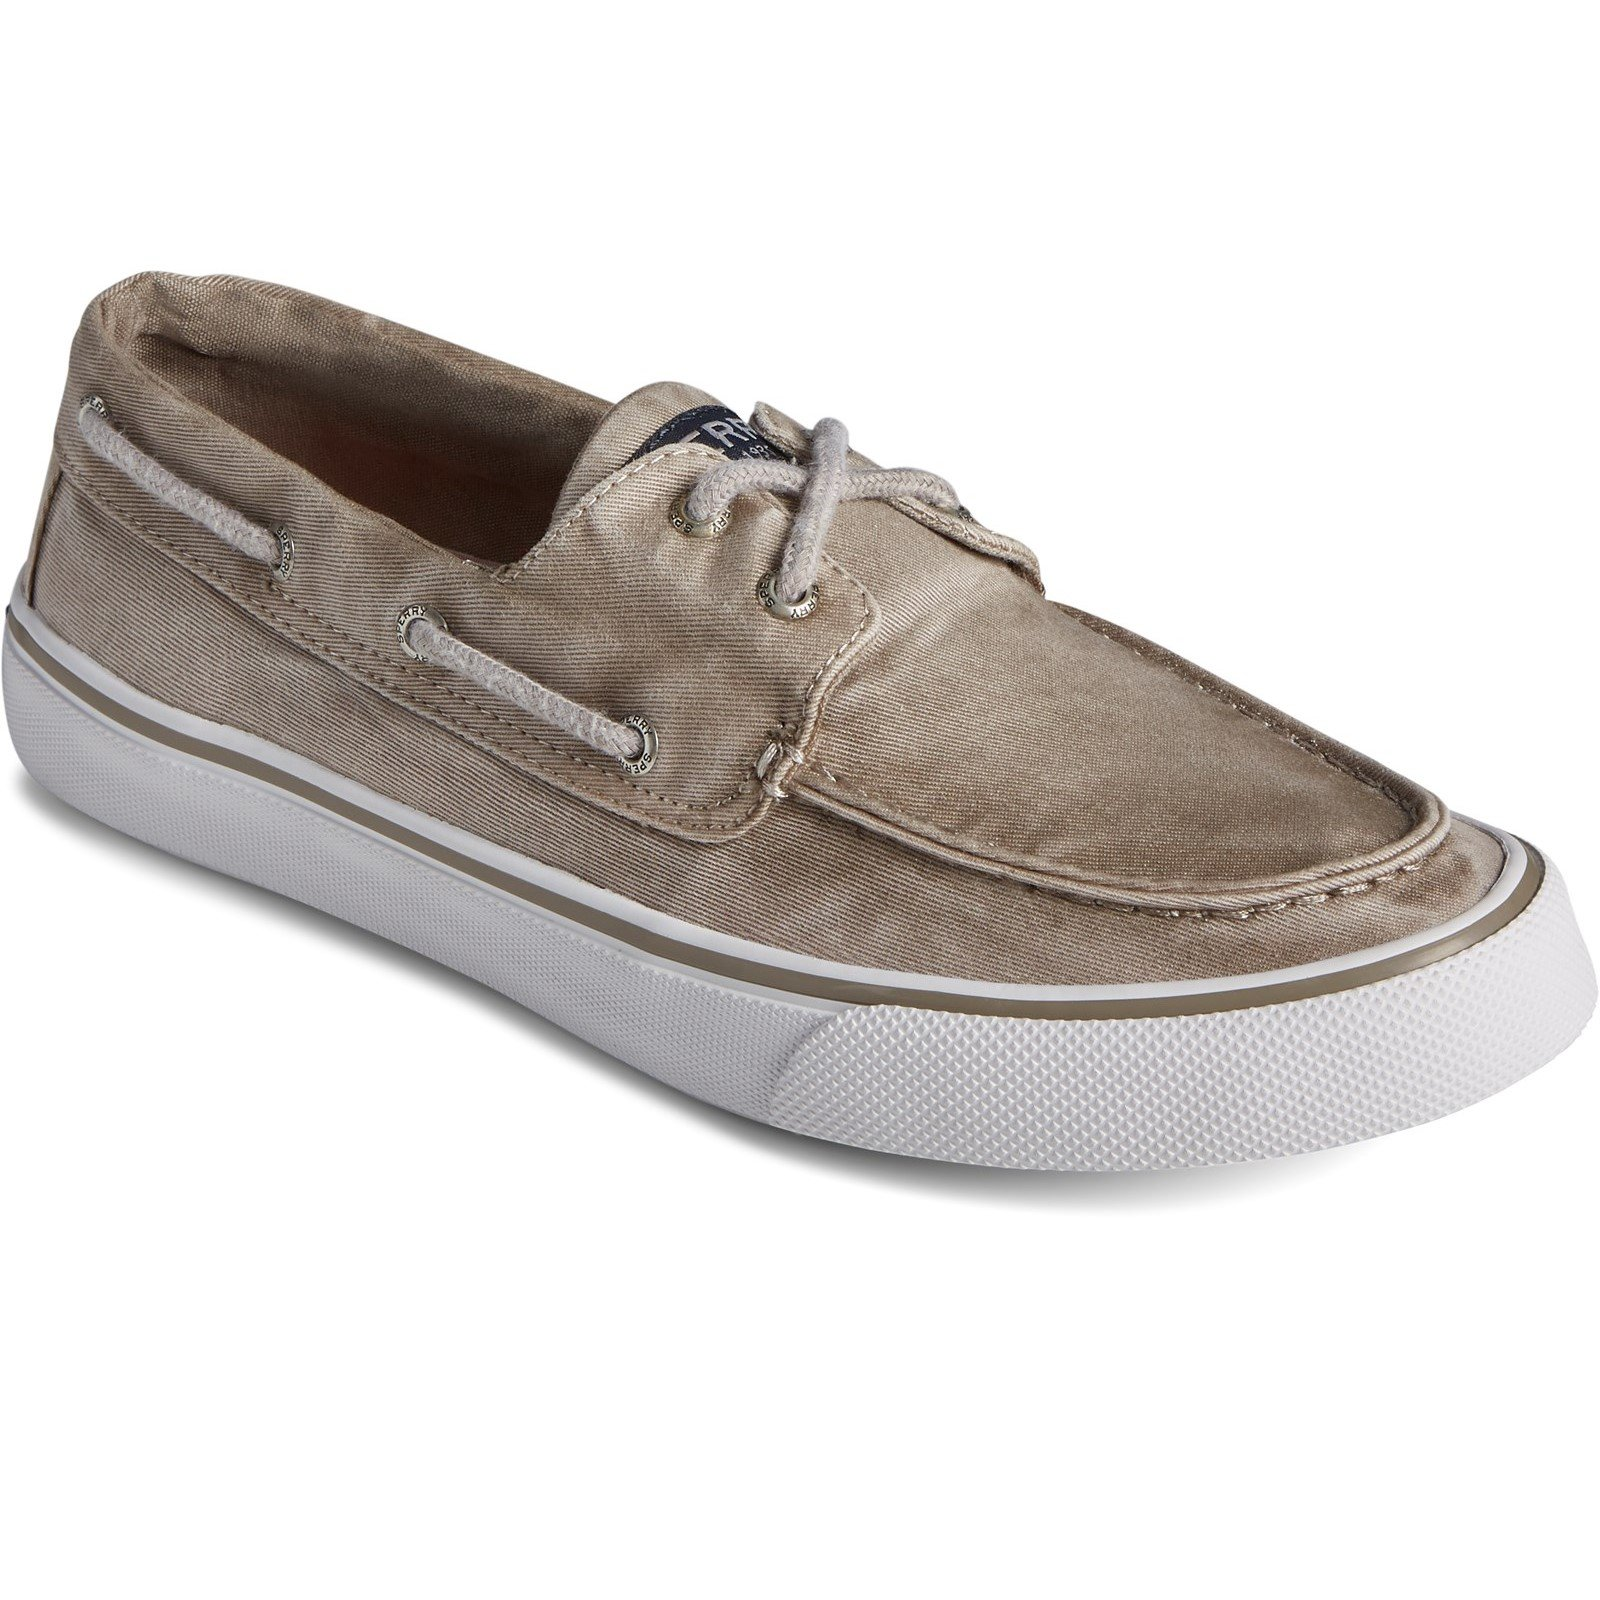 Sperry Men's Bahama II Boat Shoe Various Colours 32923 - Taupe 13